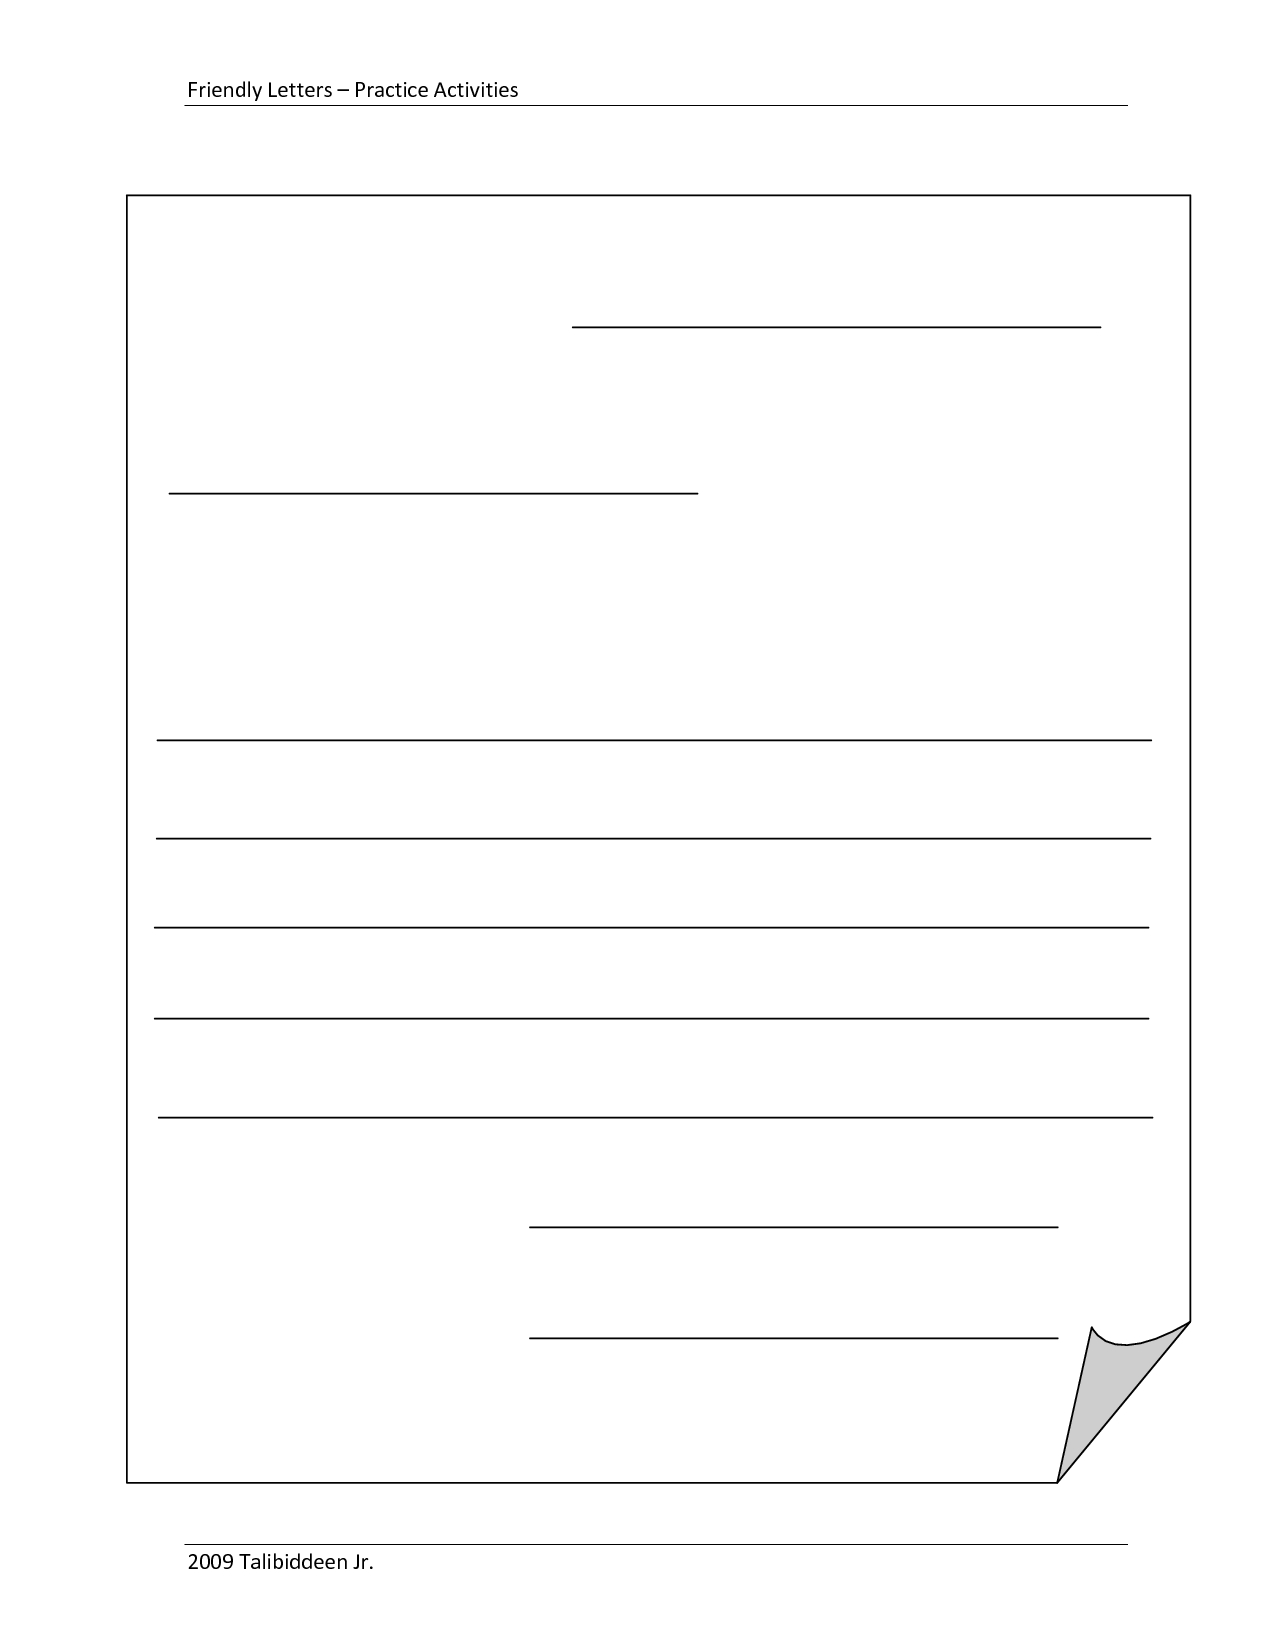 Blank+Letter+Format+Template | Friendly Letter, Letter With Blank Letter Writing Template For Kids